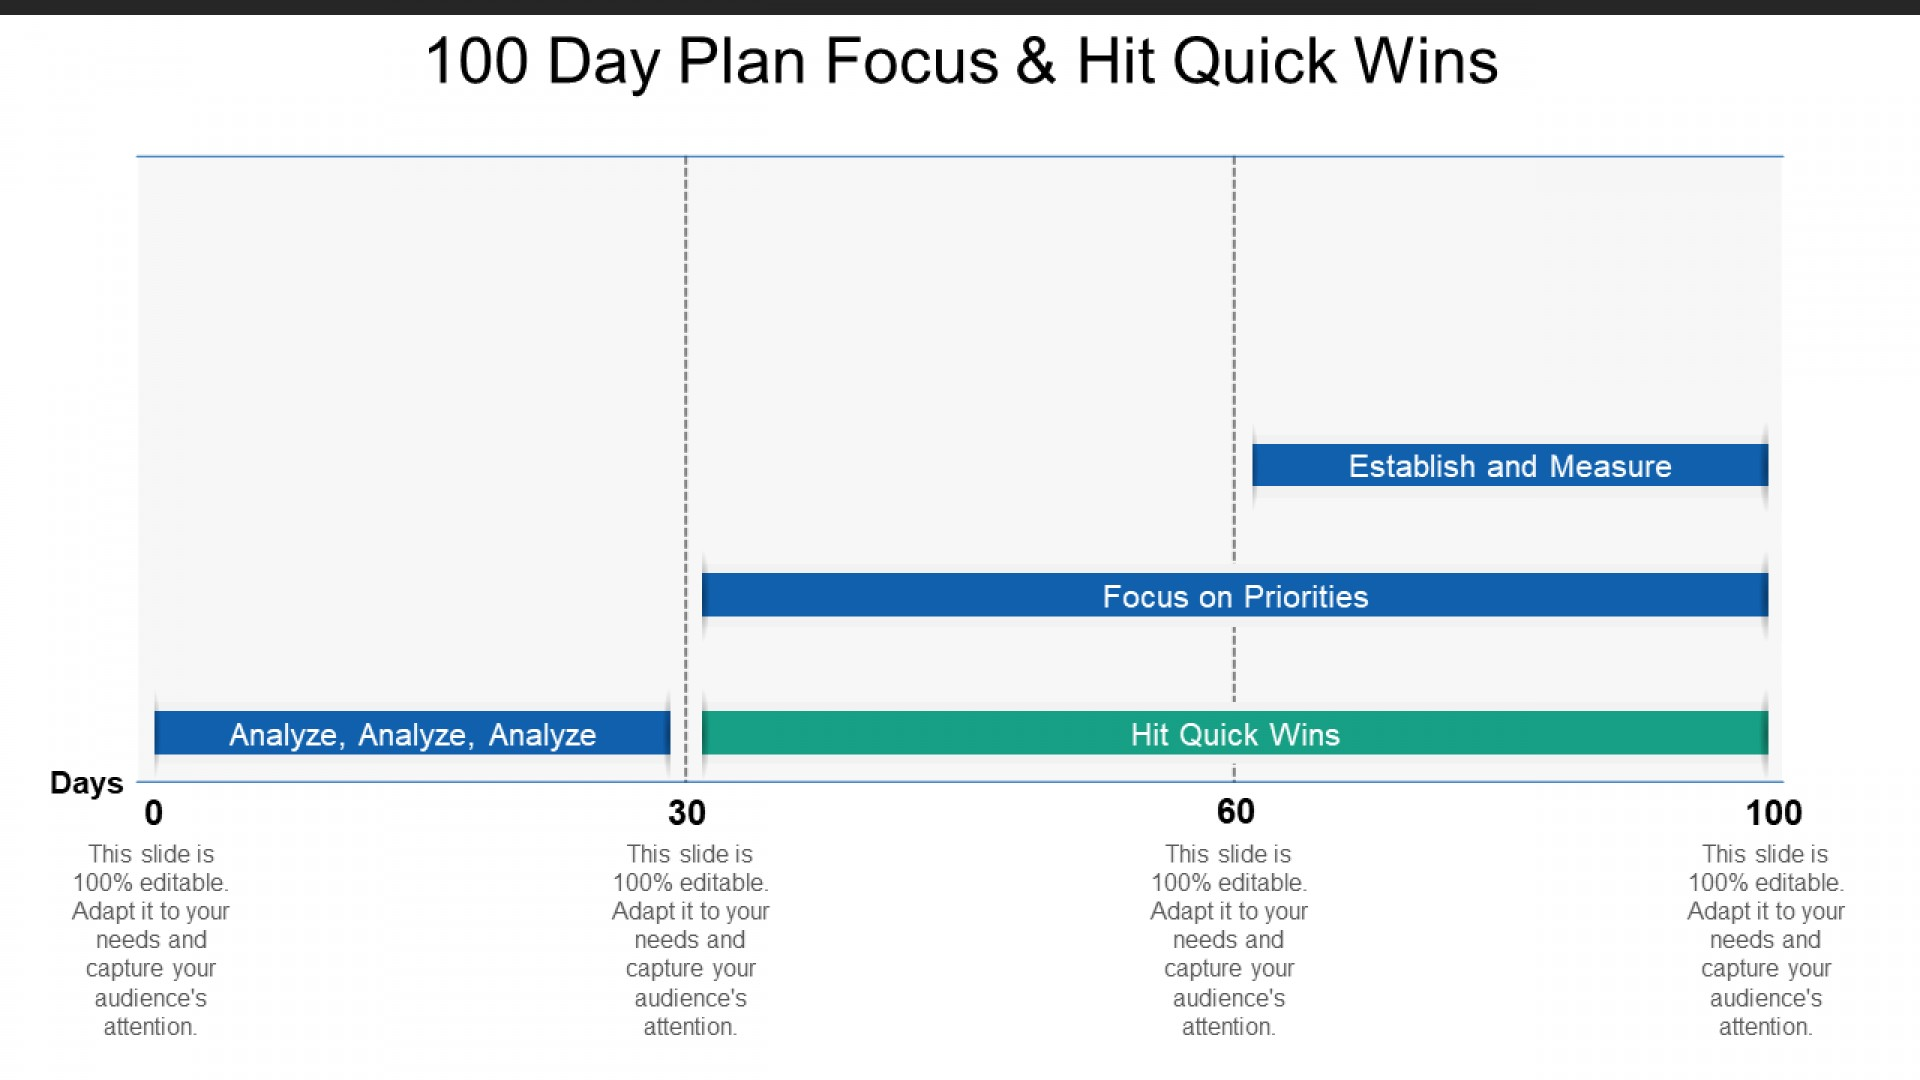 004 Wonderful 100 Day Planning Template Photo  Plan Powerpoint Free New Job Example1920